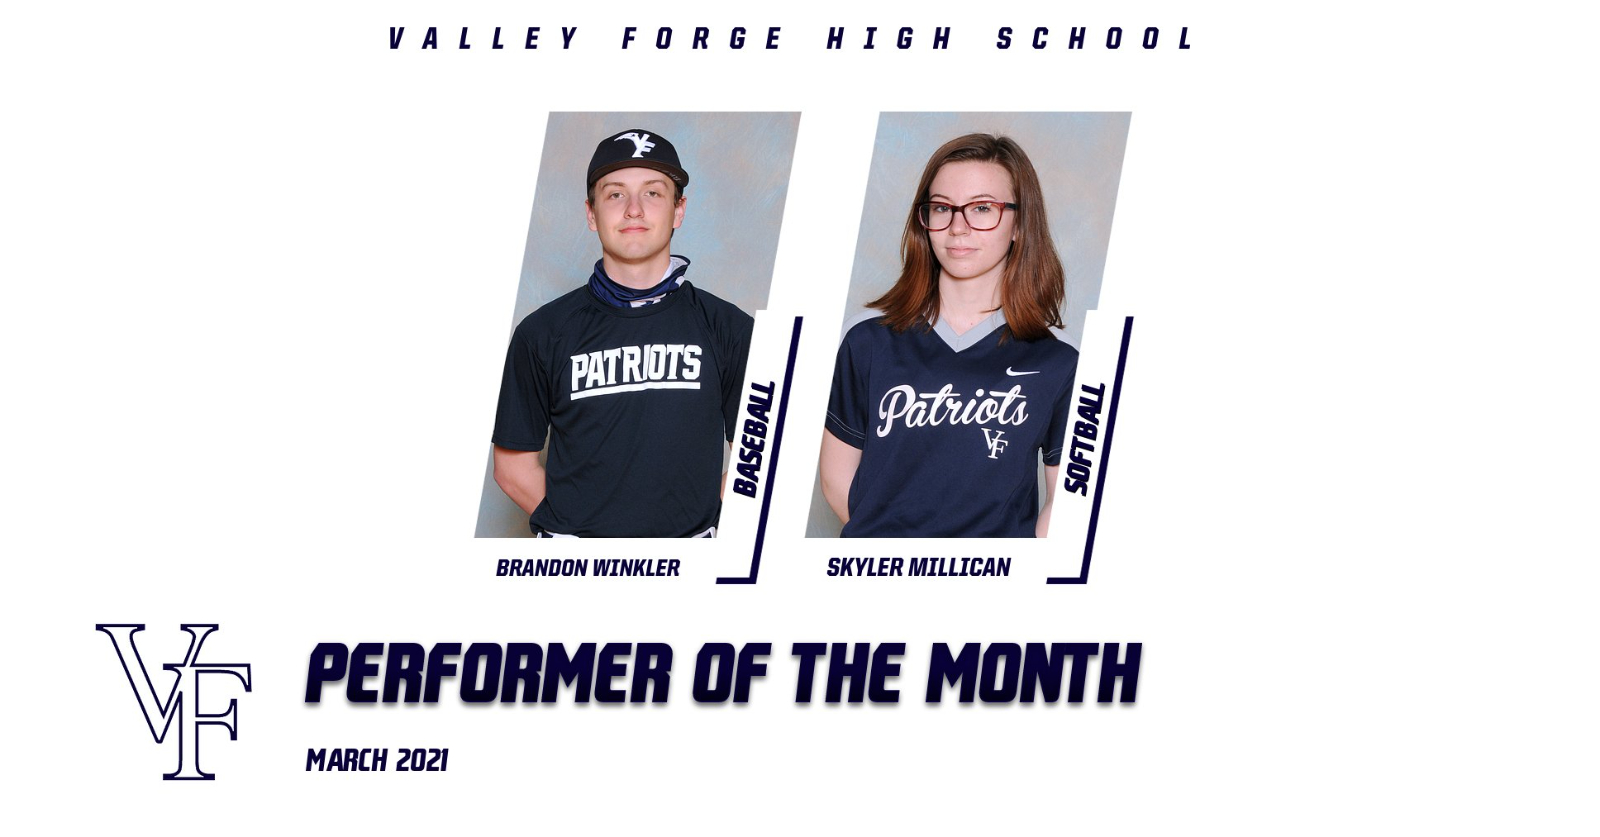 VF Performer of the Month – March 2021